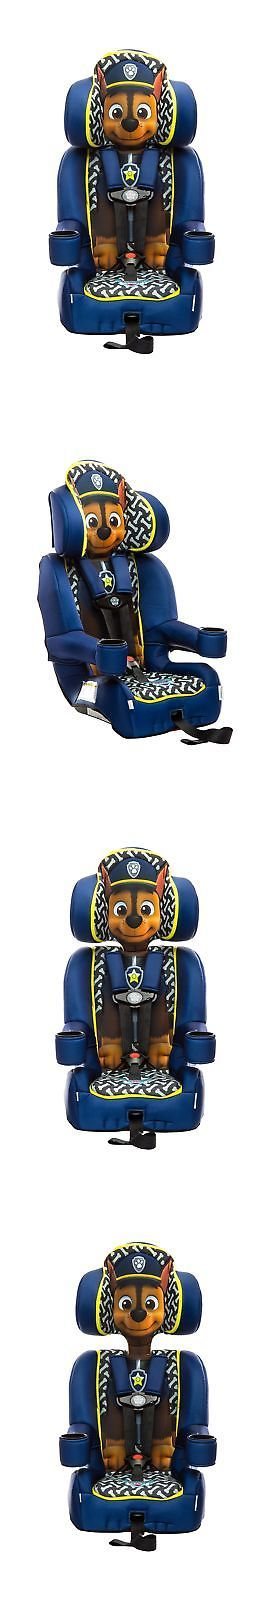 Booster To 80lbs 66694 Kidsembrace Nickelodeon Paw Patrol Chase Combination Harness Car Seat